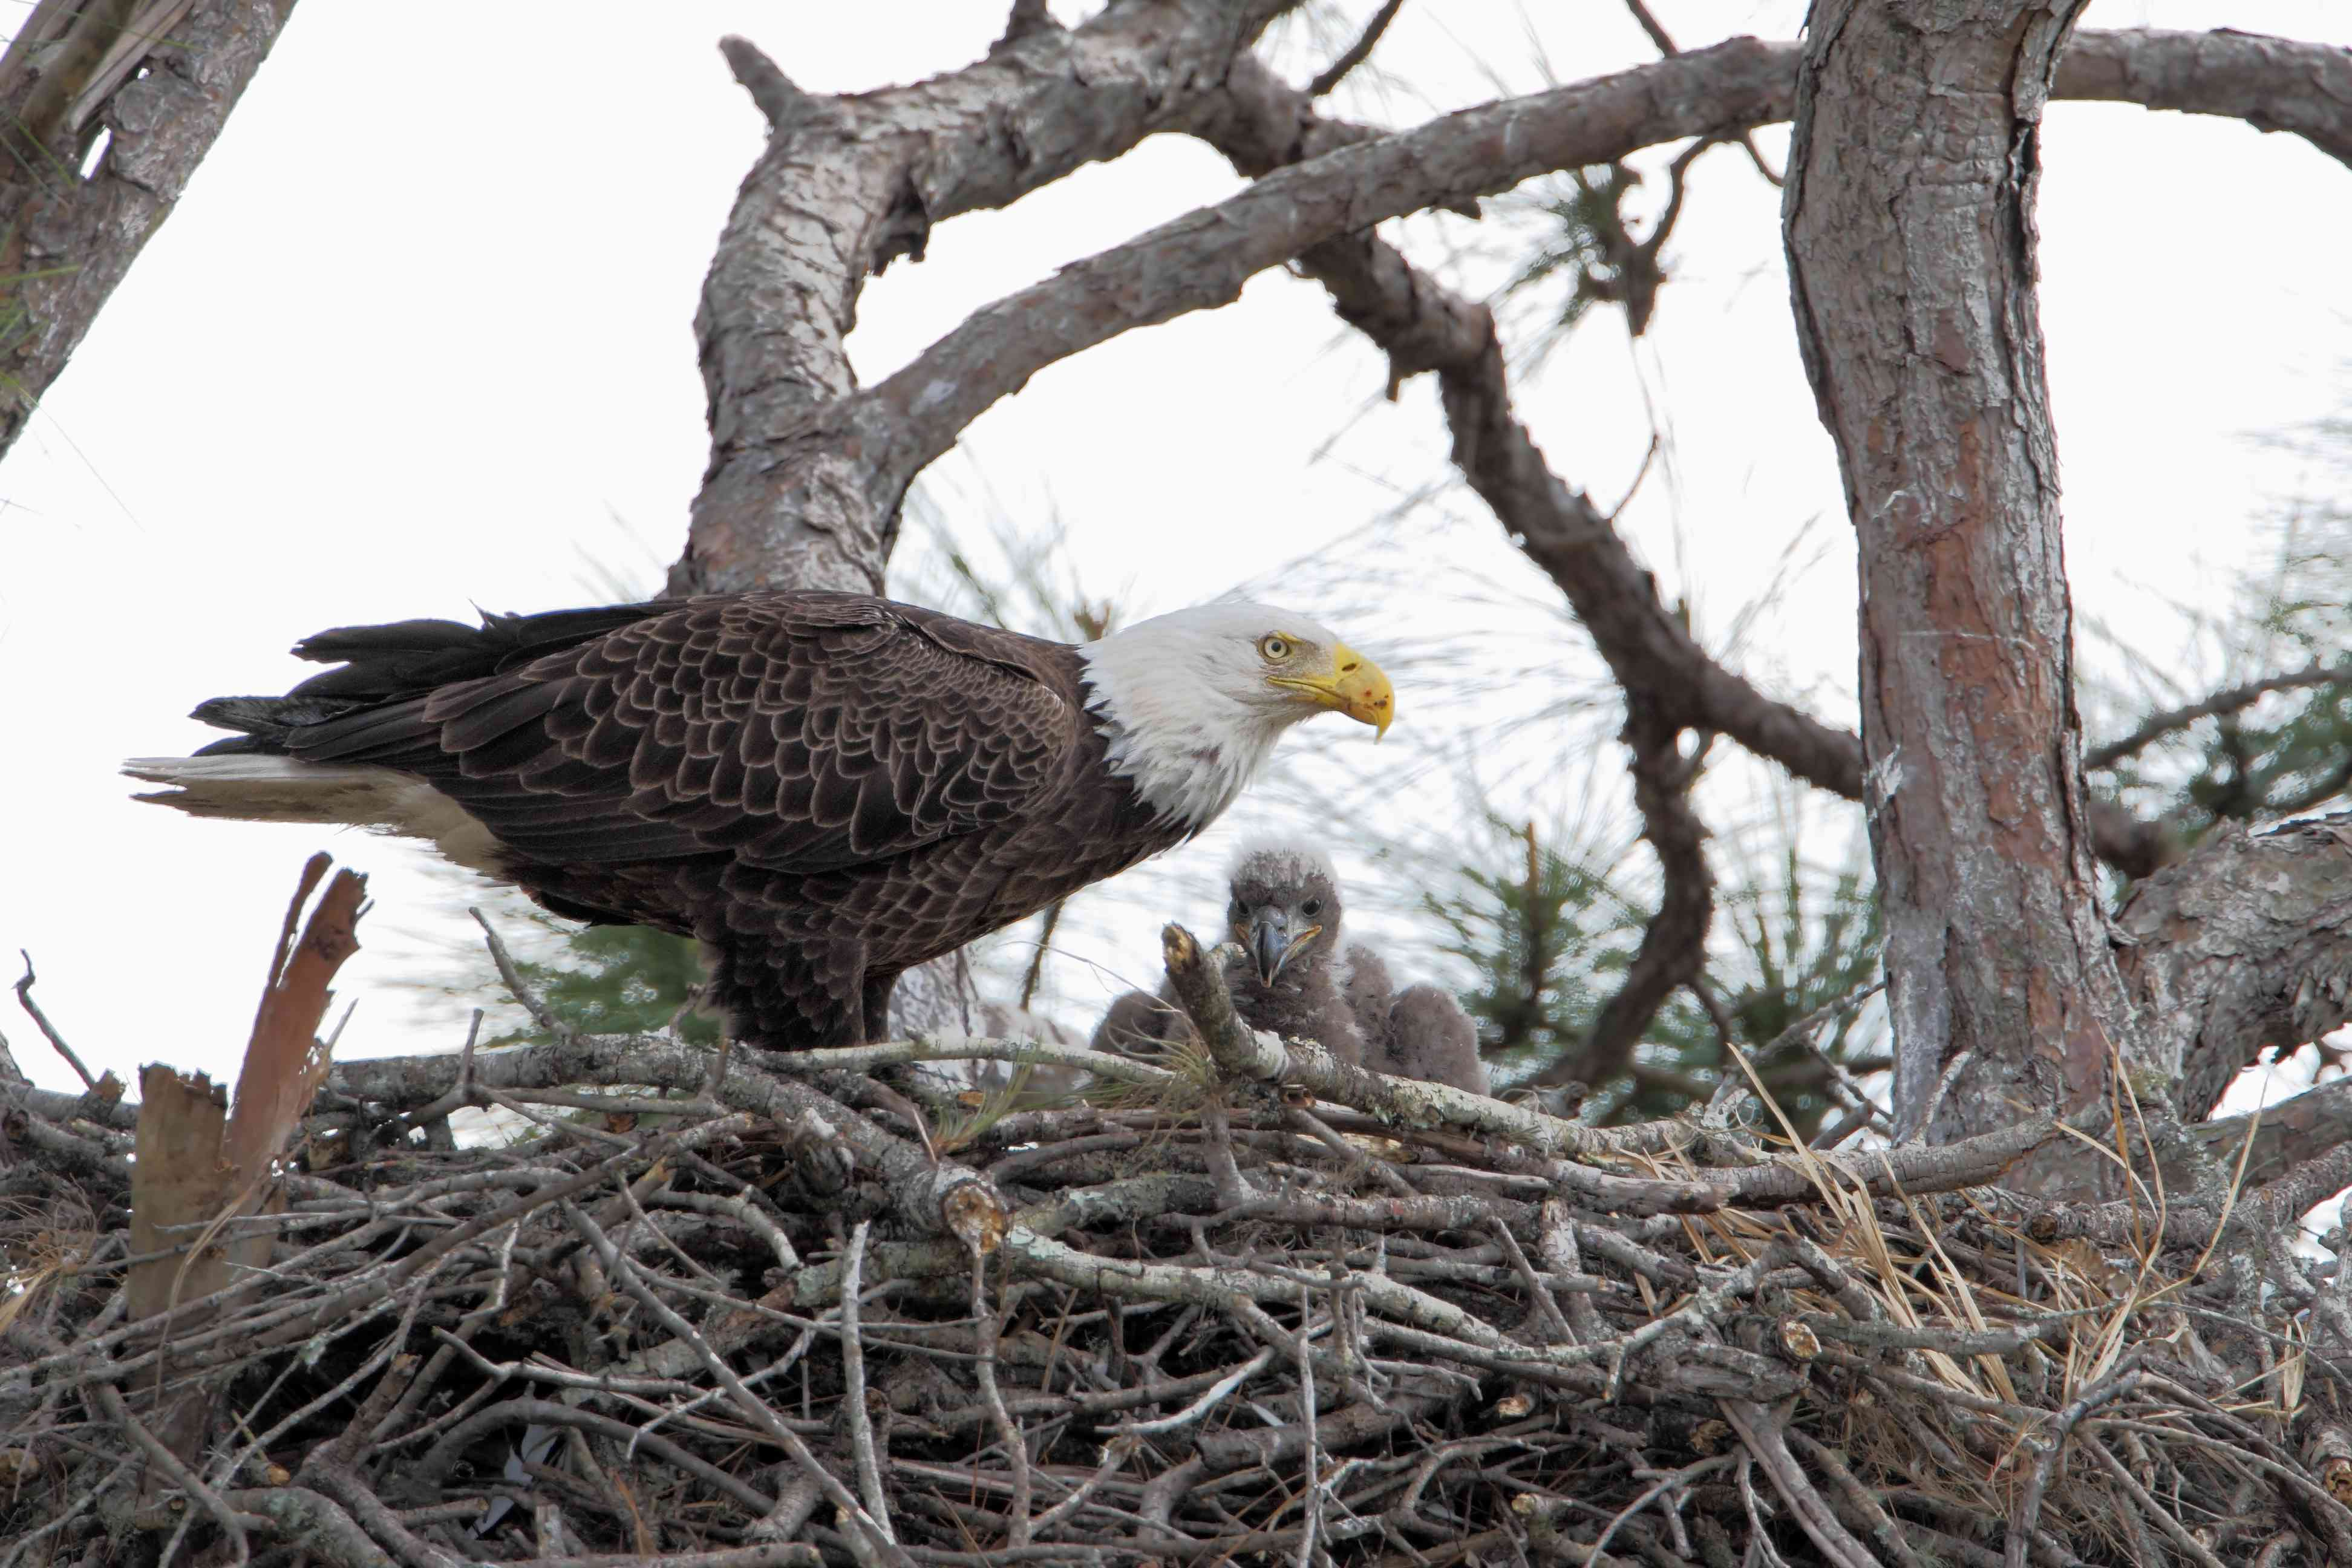 bald eagle adult with chick in nest